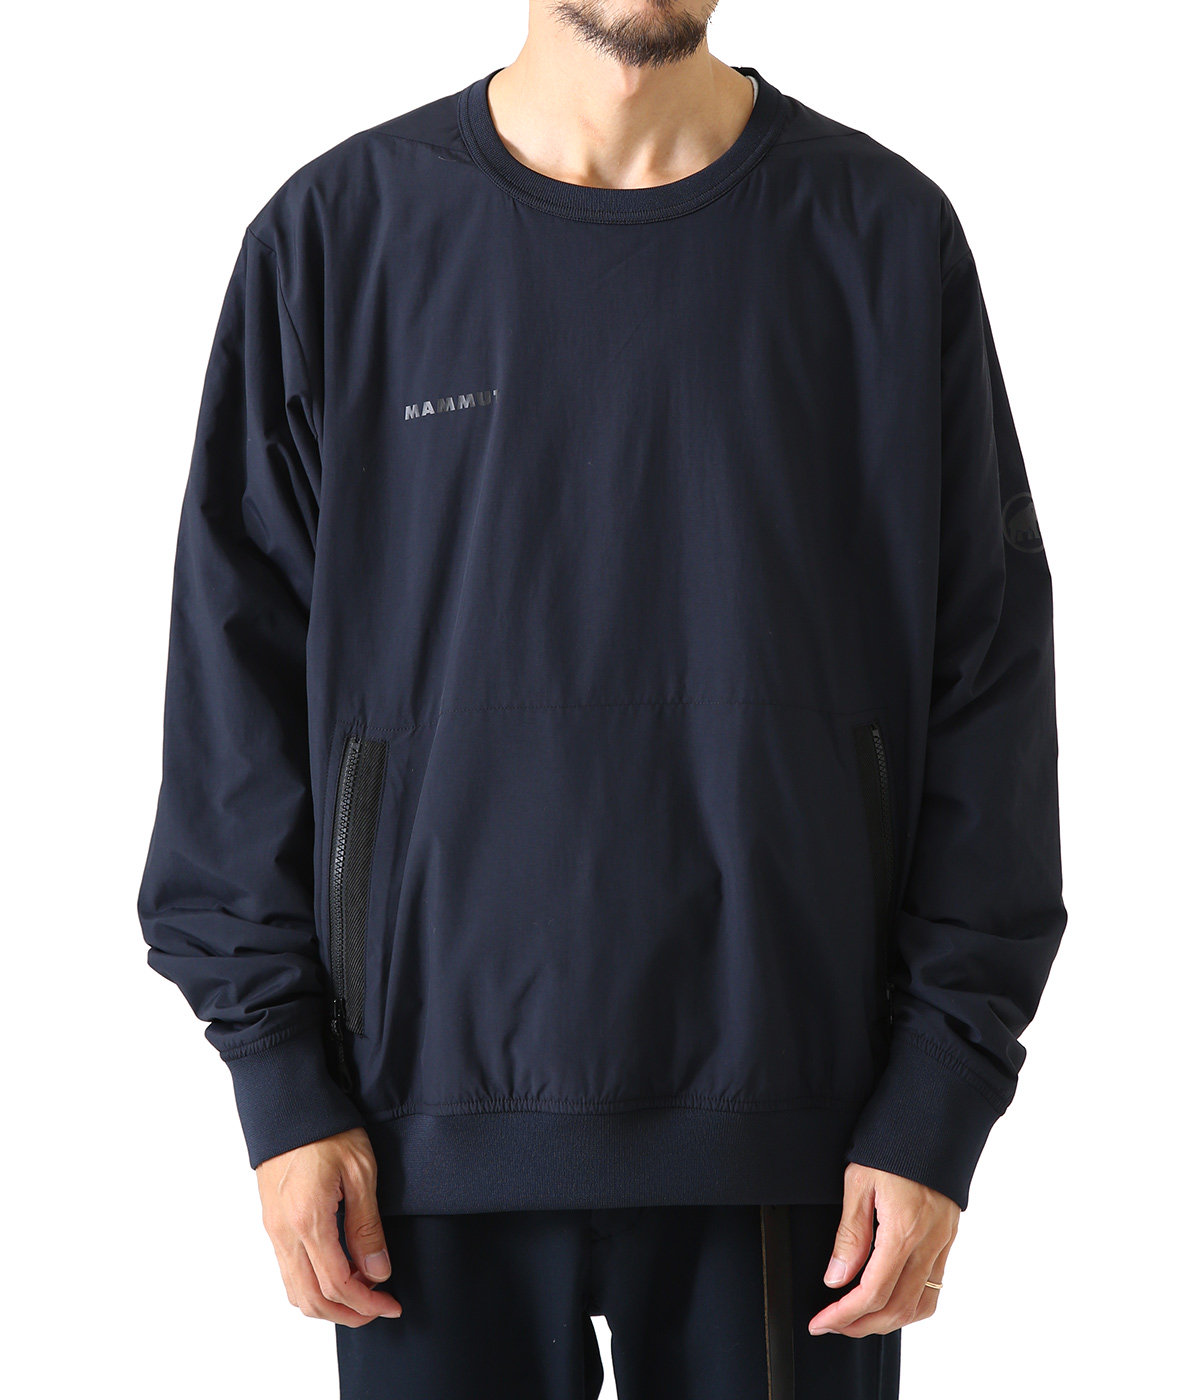 【予約】Seon Rock IN Crew Neck AF Men